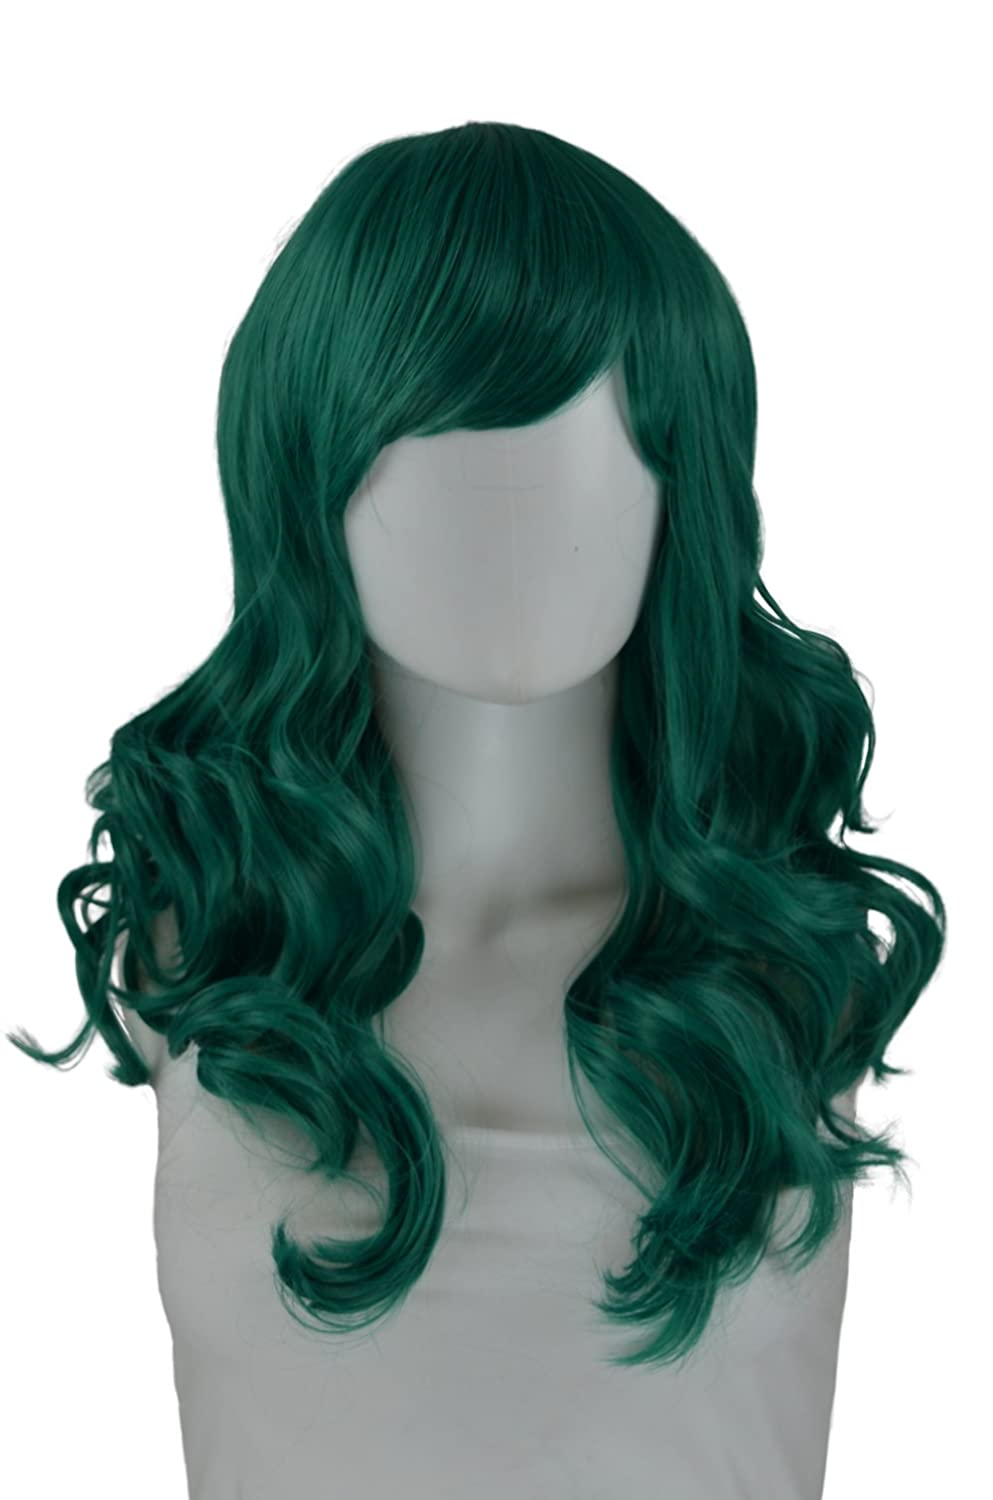 Epic Cosplay Hestia Regular store Reservation Emerald Green Inches Wig 08EMG Curly 22